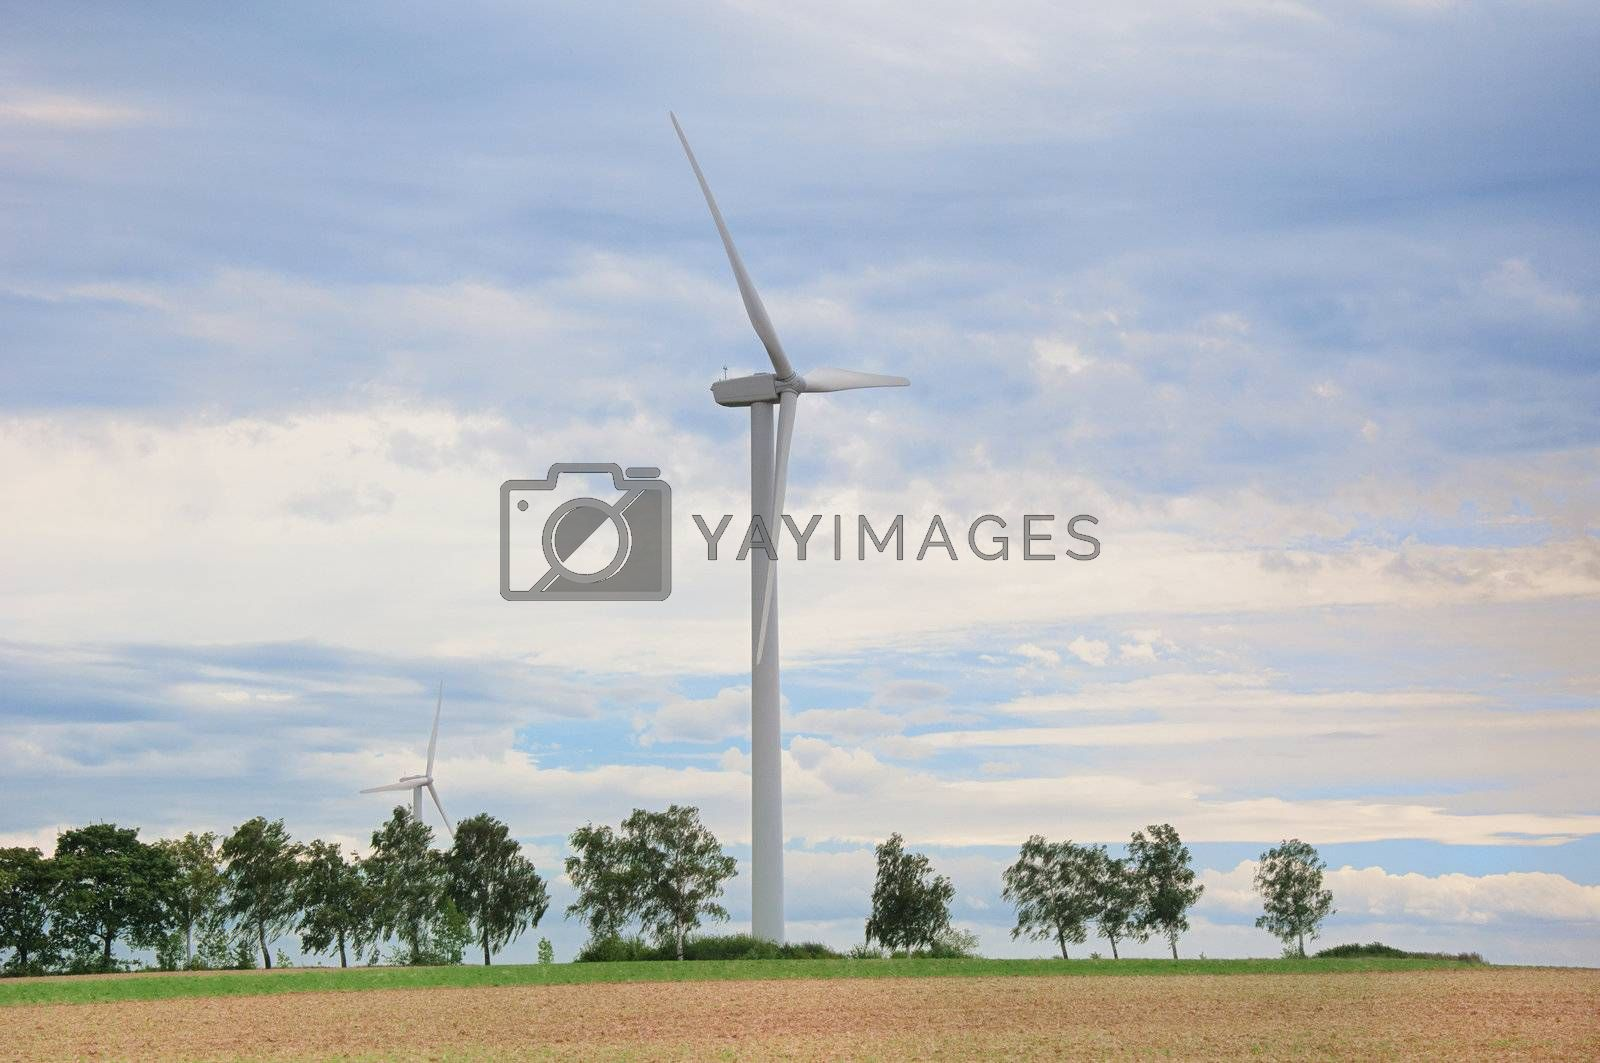 Wind turbines to generate electricity from wind in Germany.